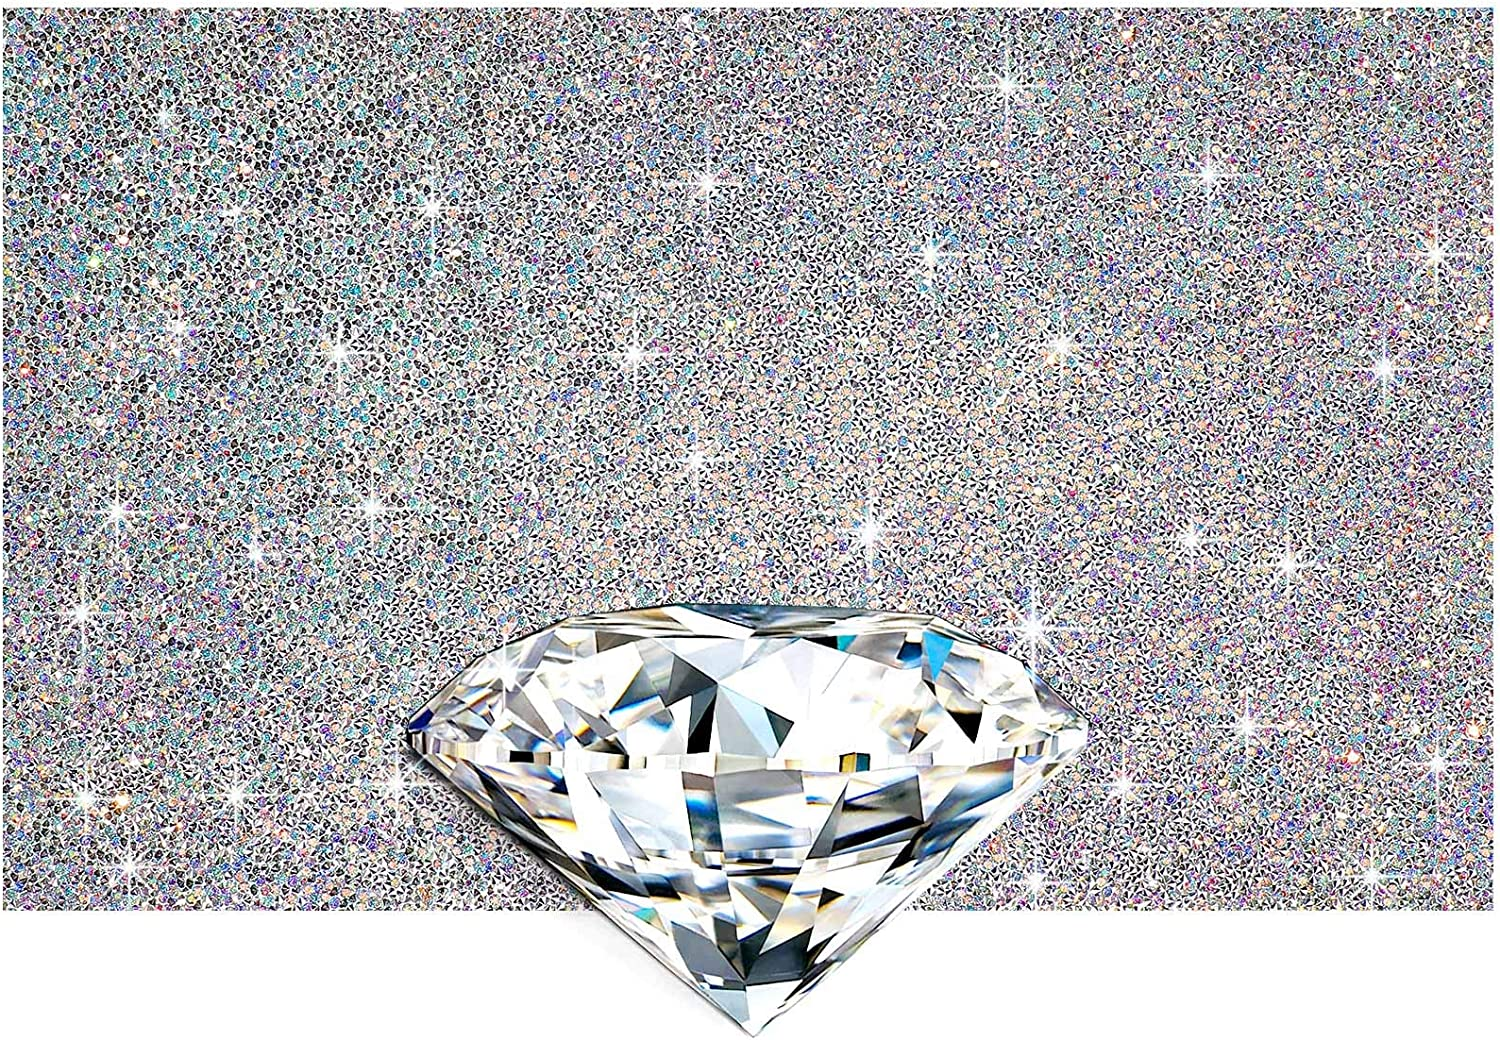 Bombing new work Shiny Columbus Mall Nail Art Hand Rest Pad Crystal Shaped and Paperwei Diamond